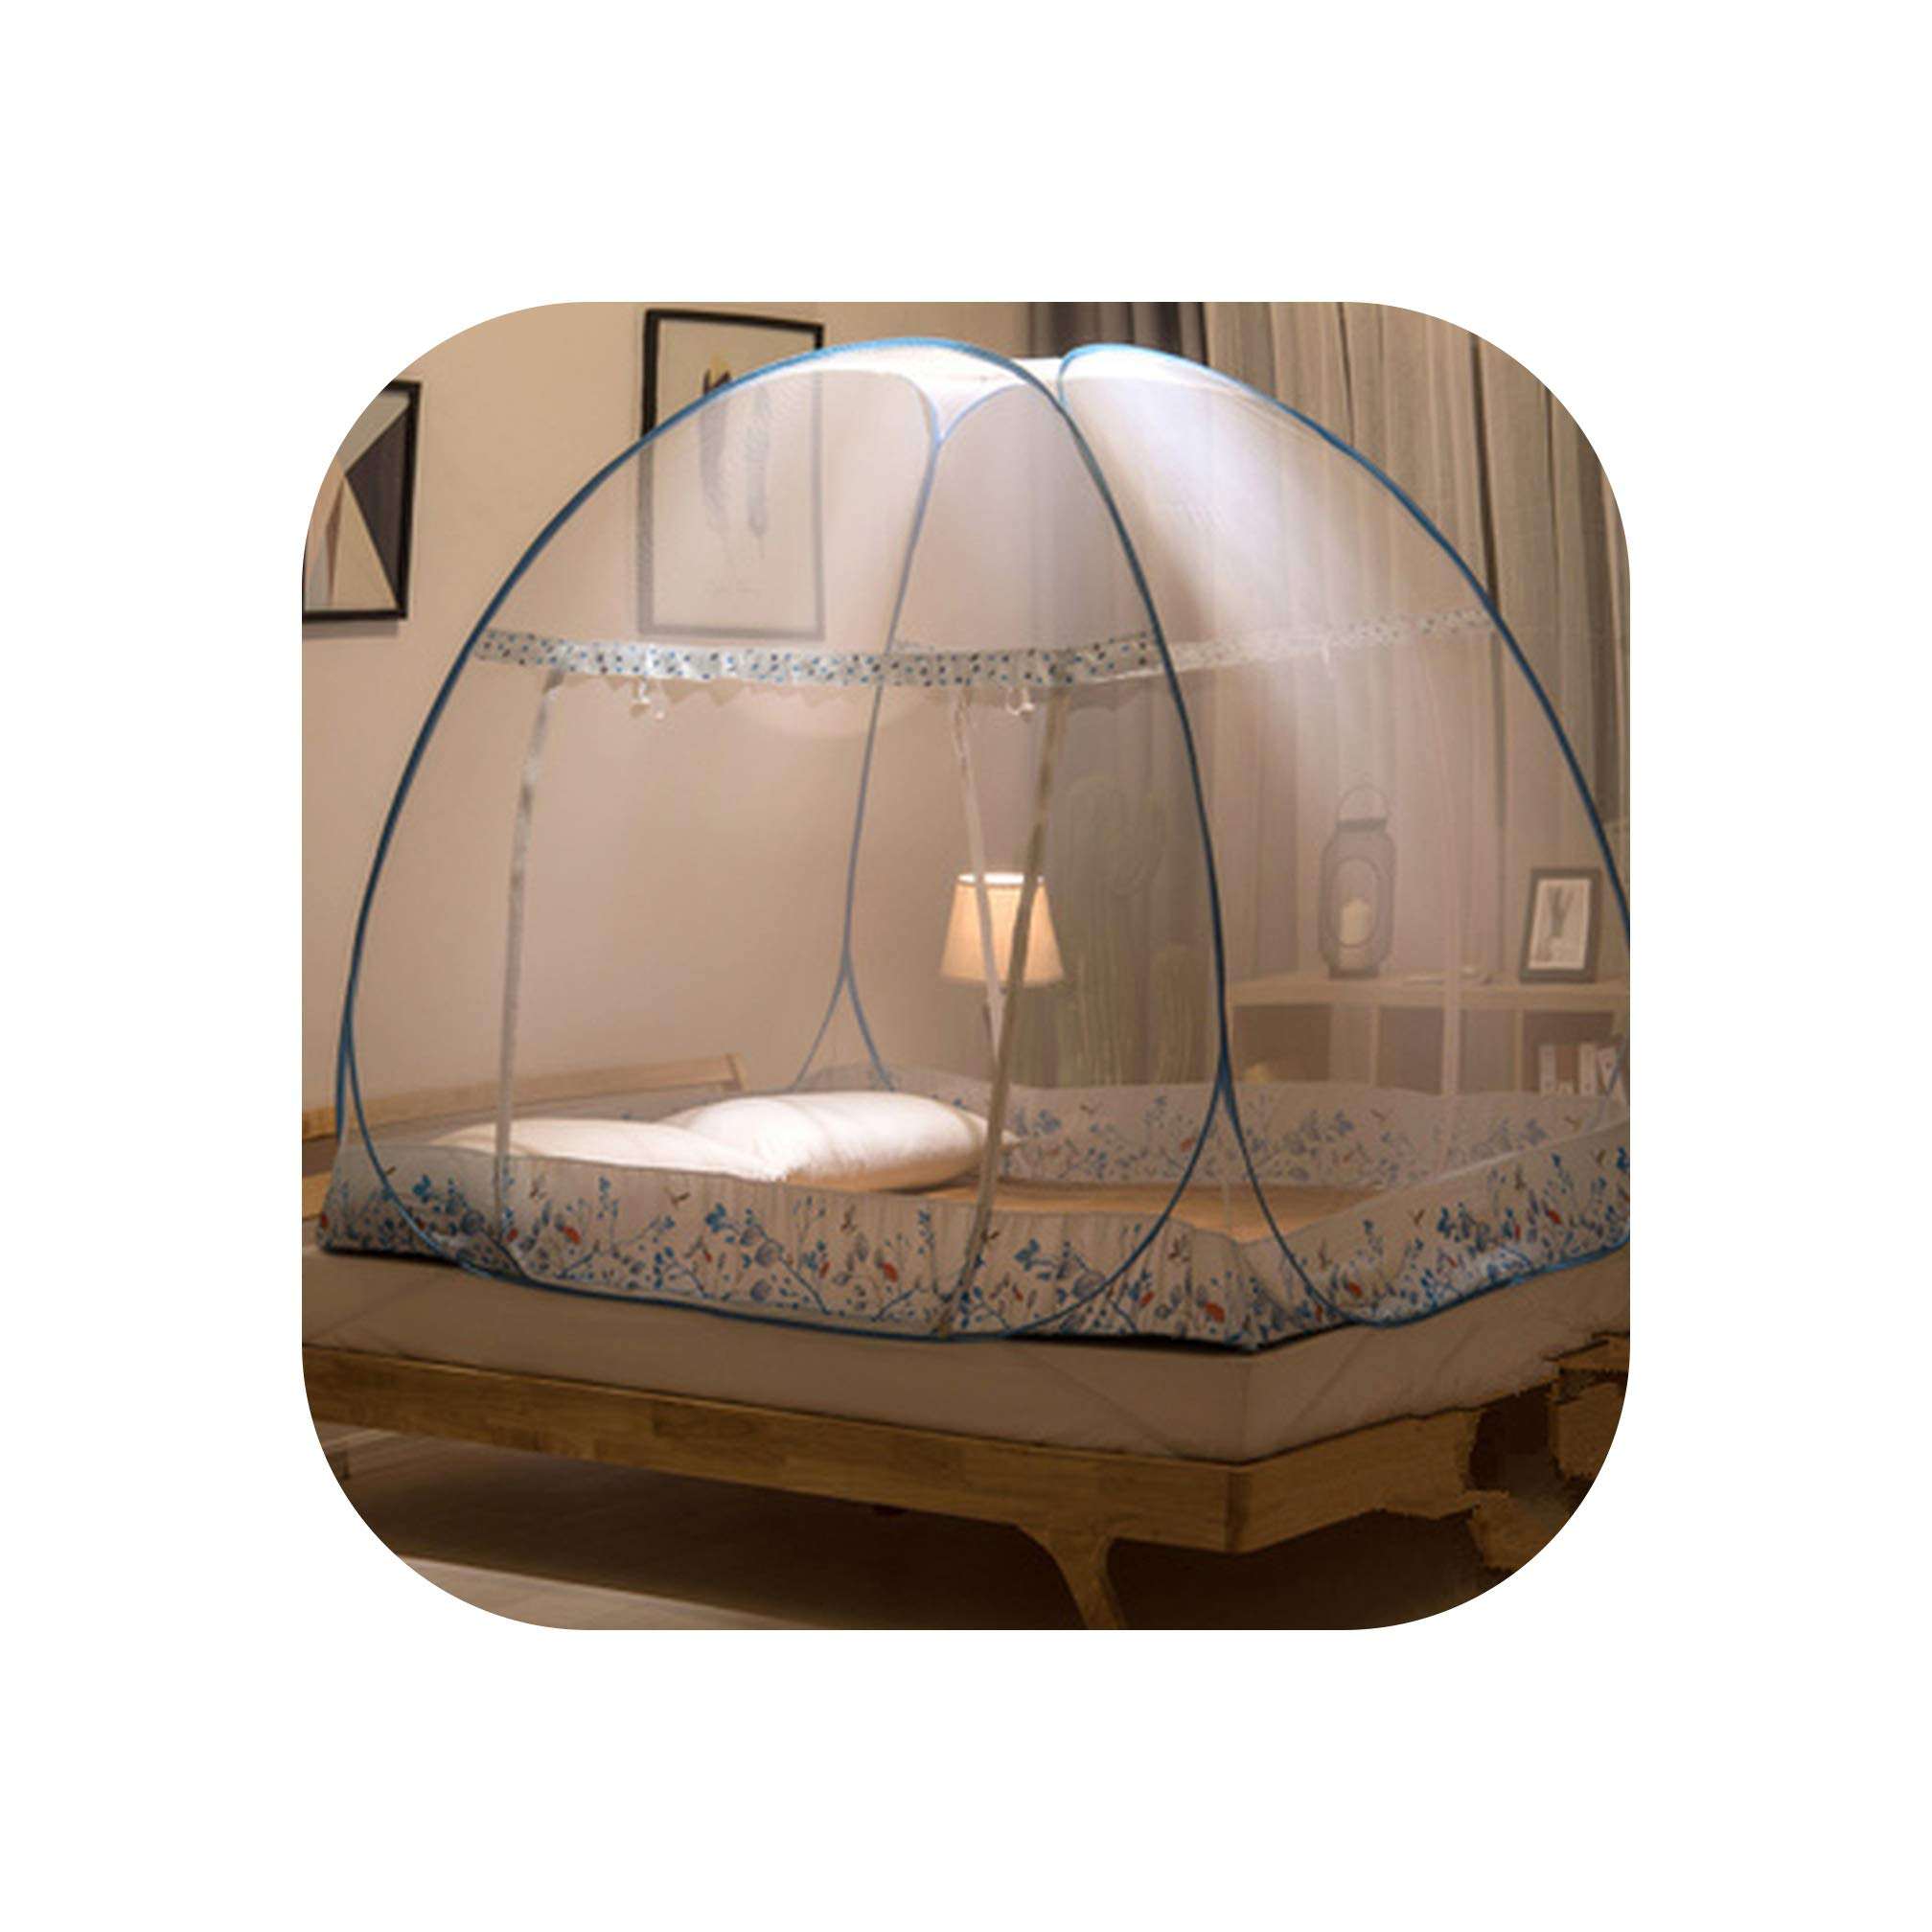 Folding Round Dome Mosquito Net Bed Tent for Adults Bed Canopy Mesh Anti Mosquito Insect Bed Canopy,Blue,1.5m (5 feet) Bed